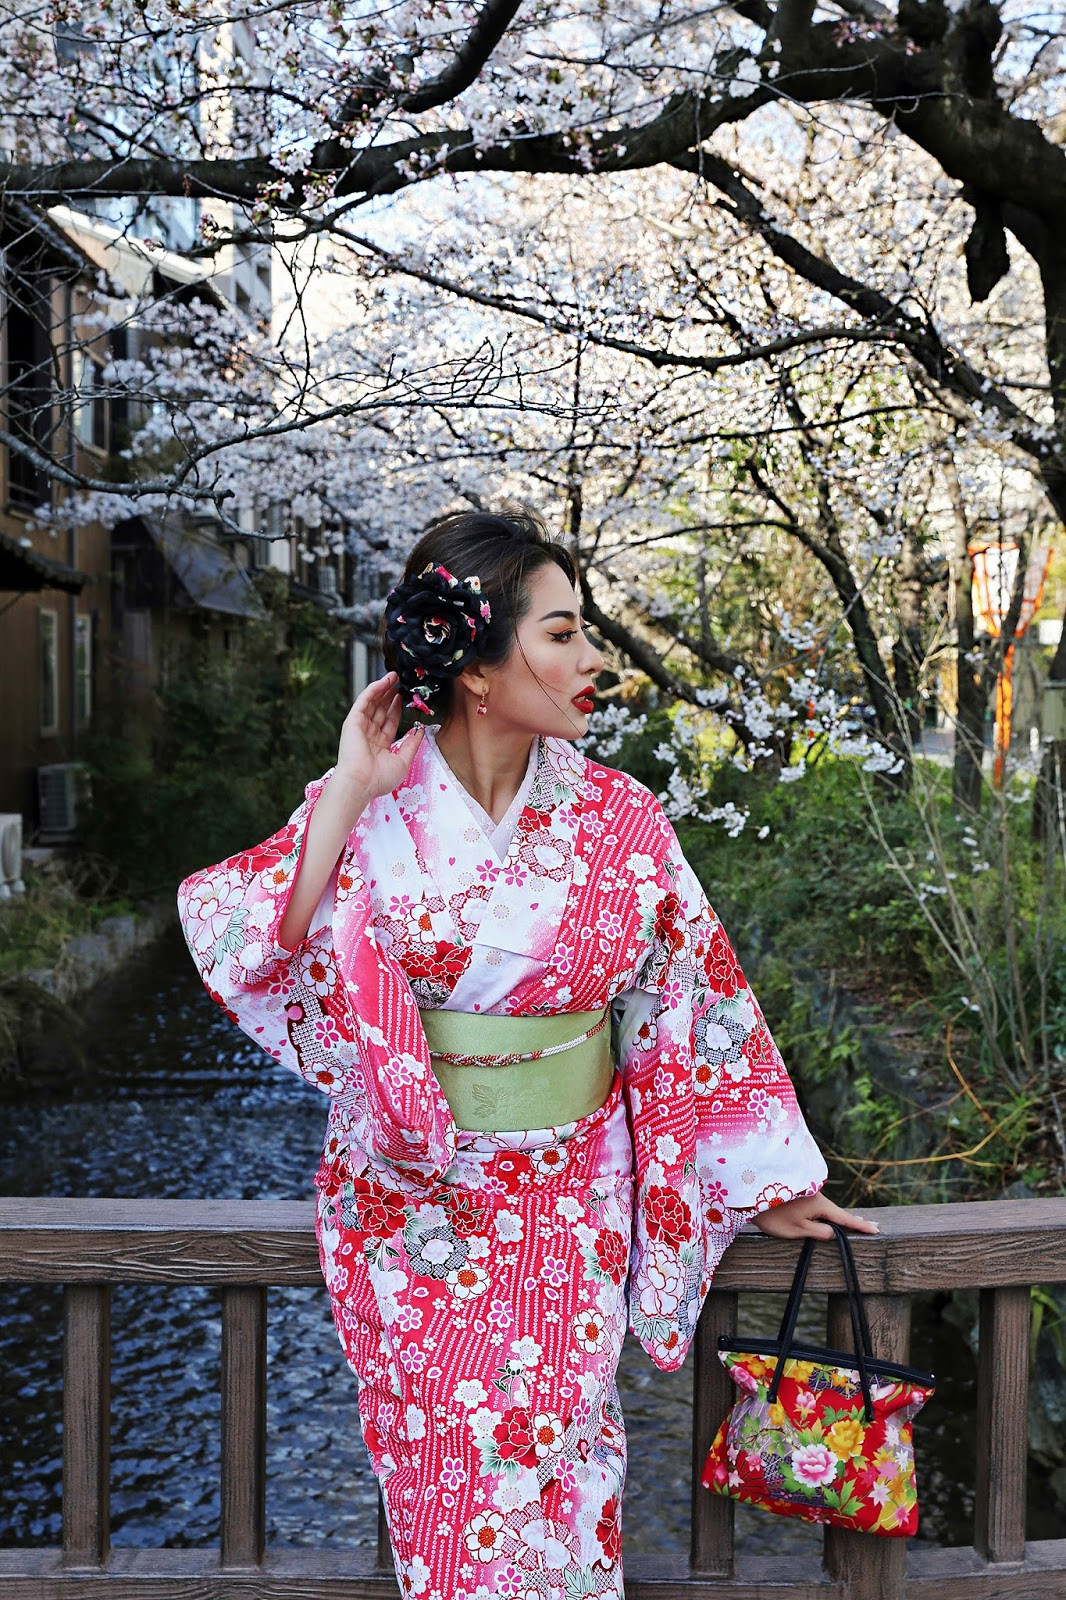 Ever wanted to live out your best Japanese fantasy? I did just that, wearing a kimono in Gion, the most famous geisha district in all of Japan. This is my kimono rental experience in Kyoto.